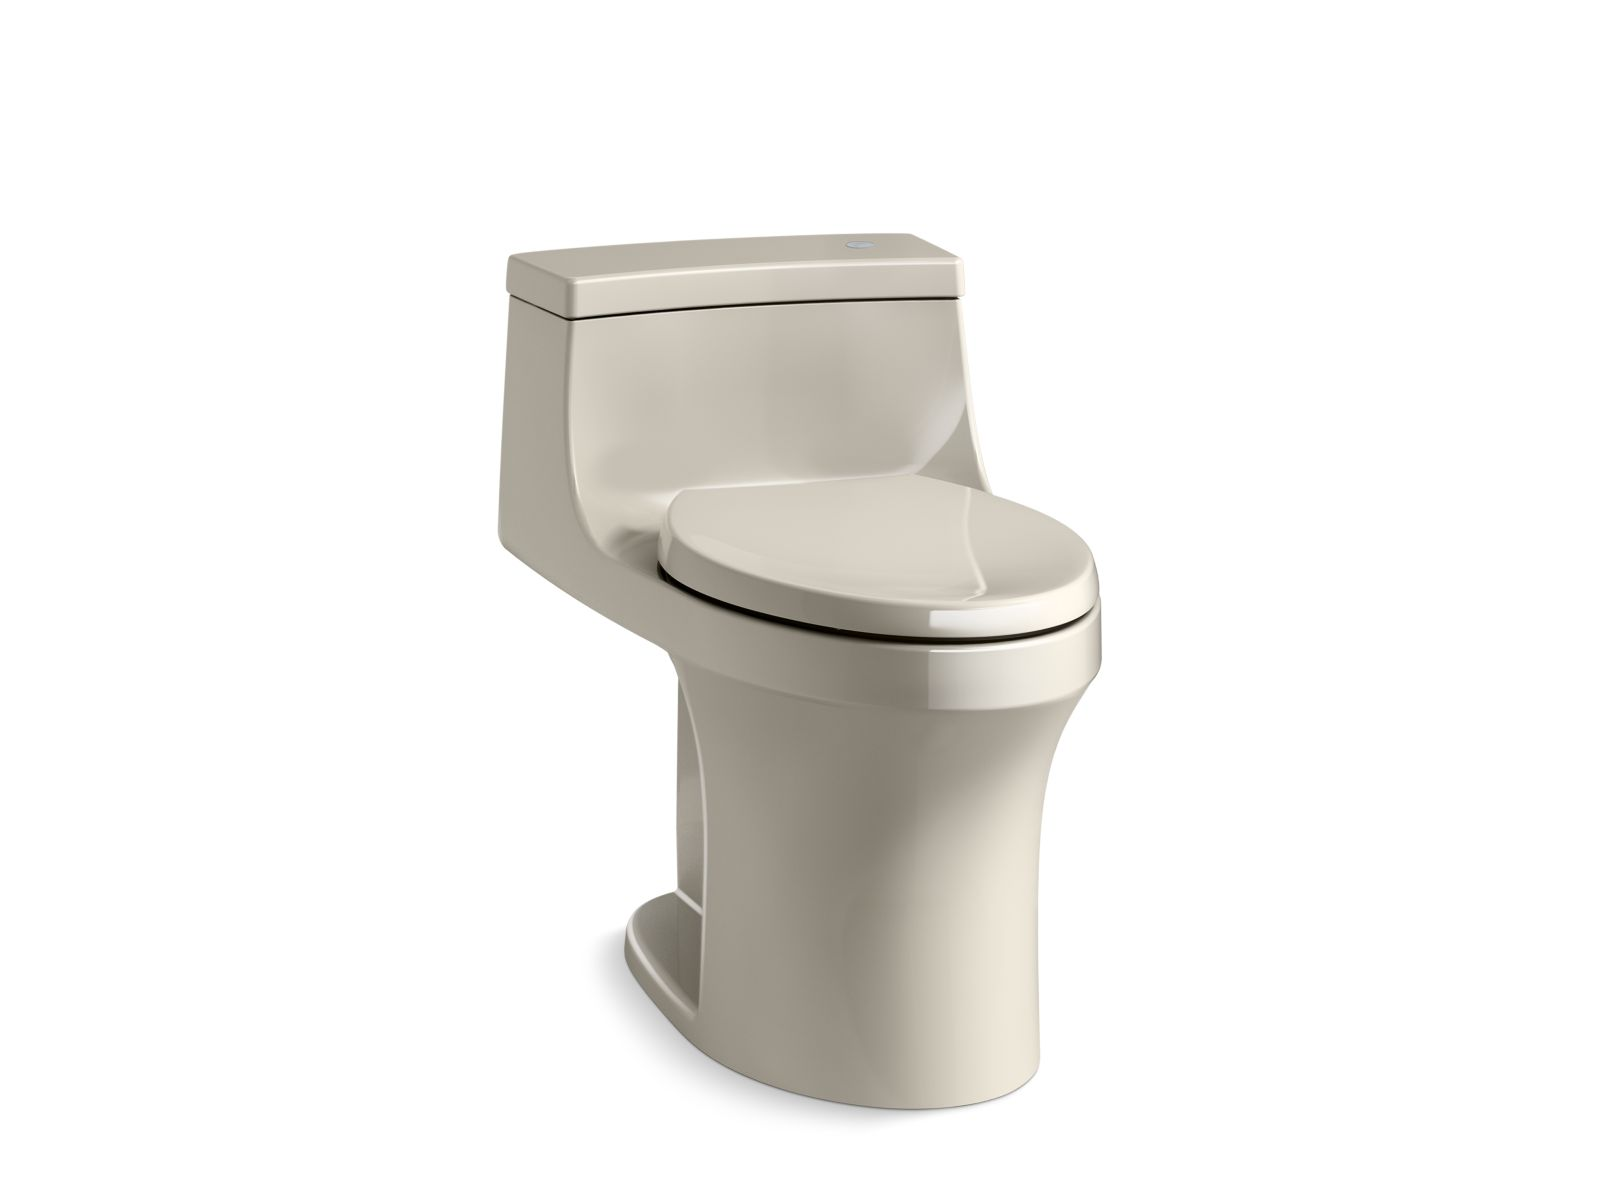 Kohler San Souci™ K-4000-G9 Touchless Comfort Height® one-piece compact elongated 1.28 gpf toilet with AquaPiston® flushing technology Sandbar